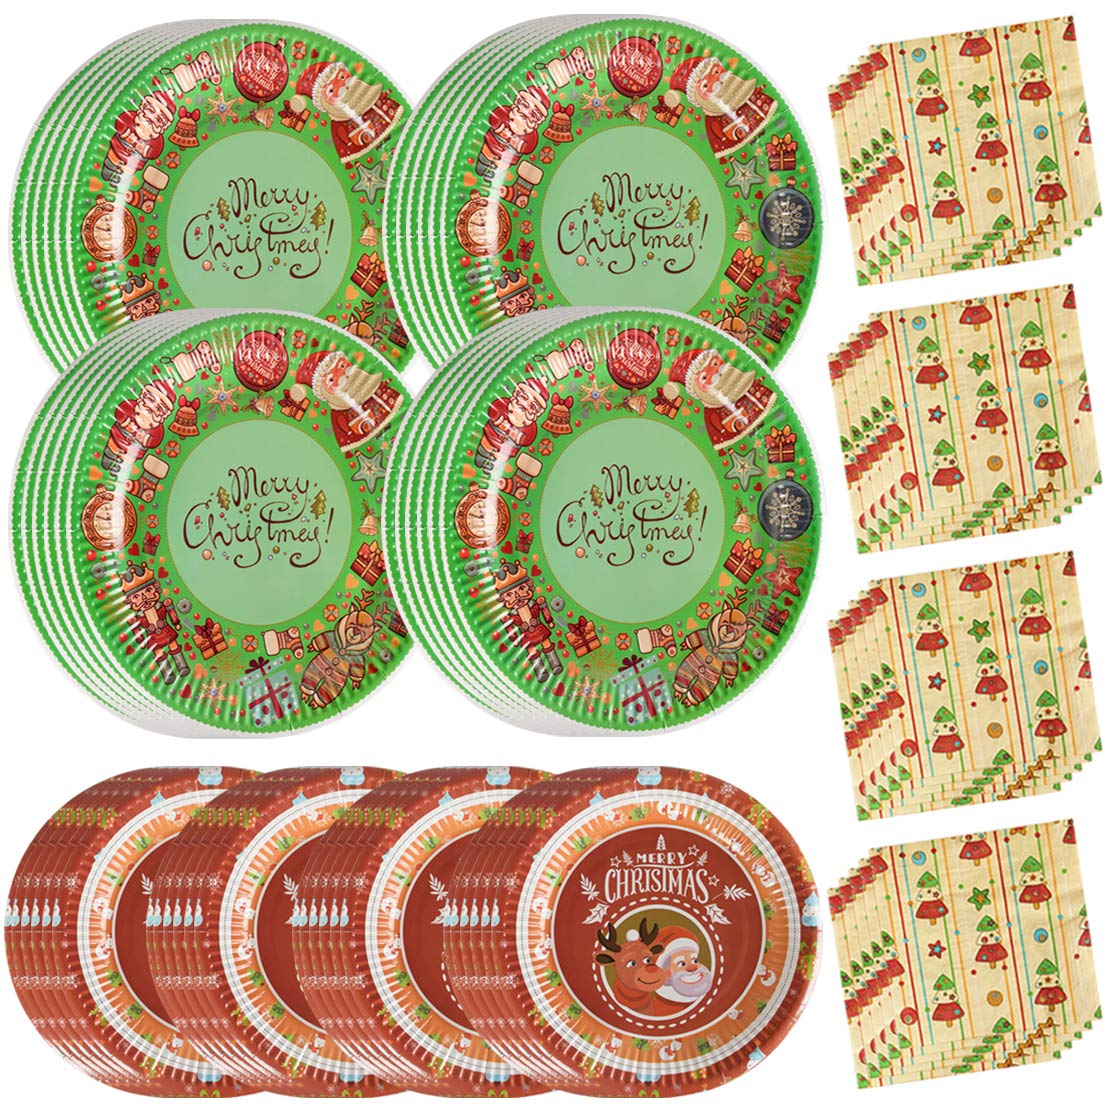 200PCS Christmas Party Supplies Paper Plates and Napkins Bulk 9 inch 7 inch Dessert Round Disposable Plates Green Red Eco Friendly Party Tableware Set (for Christmas Red&Green) by Lansian